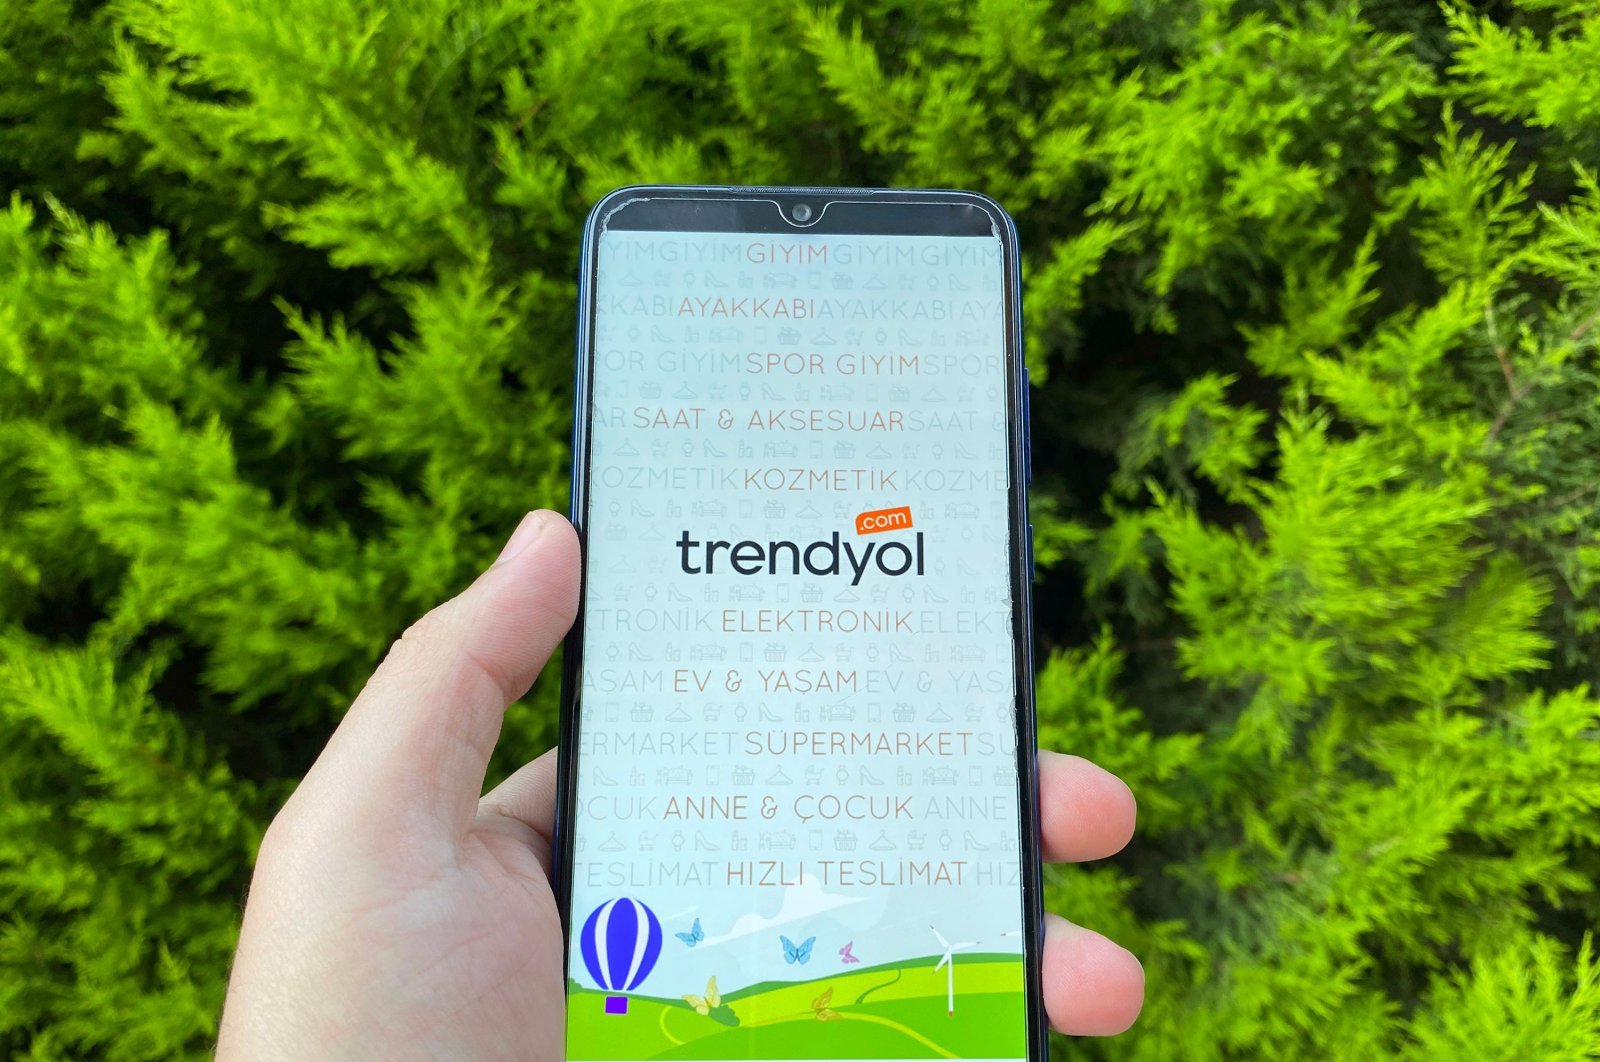 The Trendyol application is seen on the display of a smartphone, Istanbul, Turkey, May 30, 2020. (Shutterstock Photo)